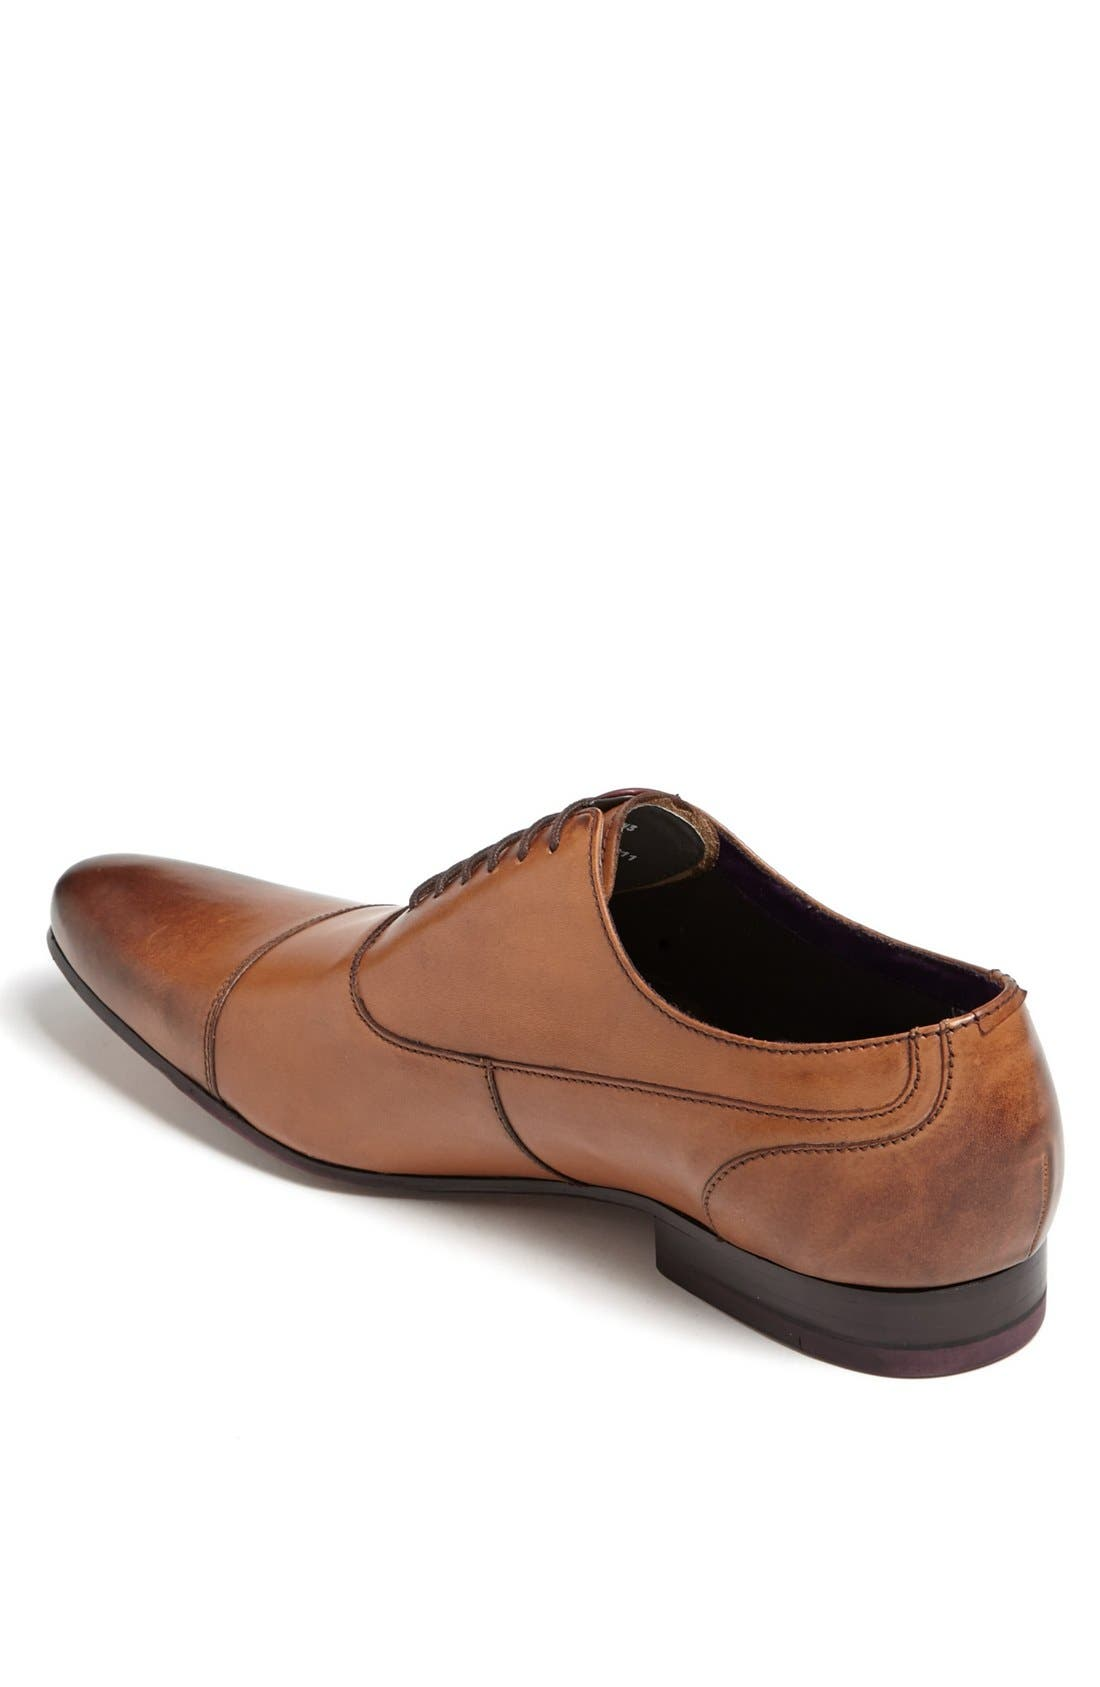 Alternate Image 2  - Ted Baker London 'Churen 3' Cap Toe Oxford